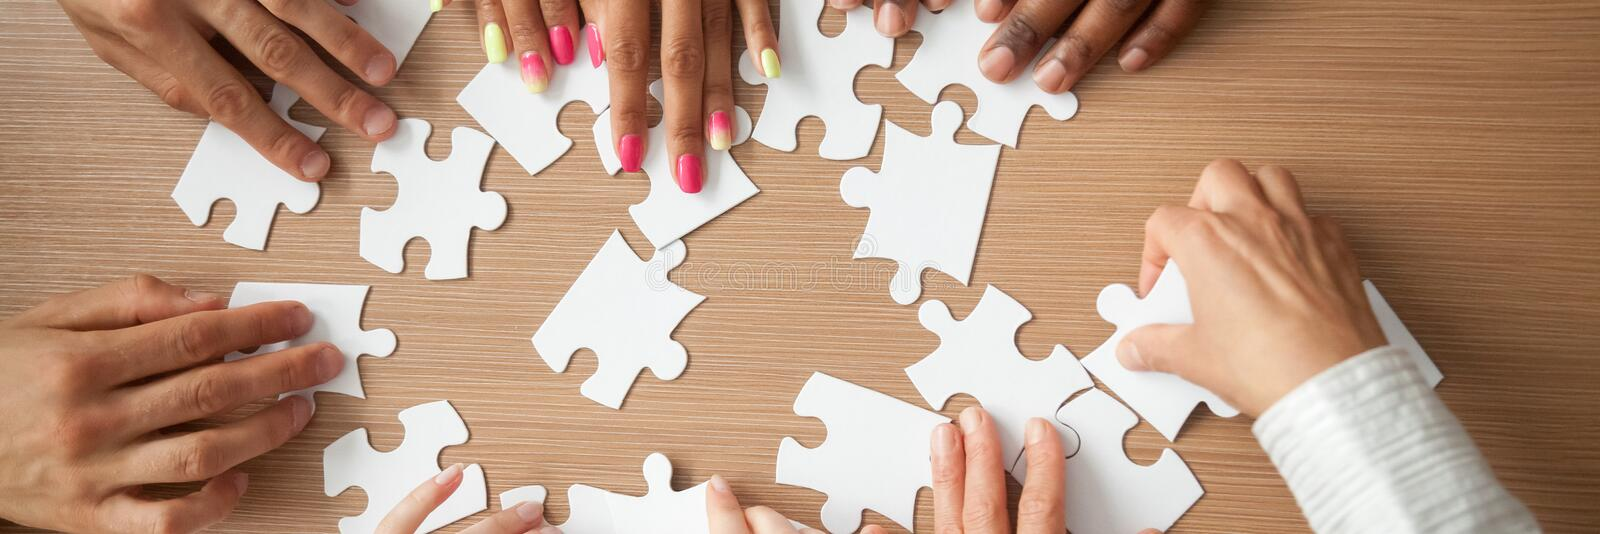 Top panoramic view hands of multinational people assembling jigsaw puzzle stock images